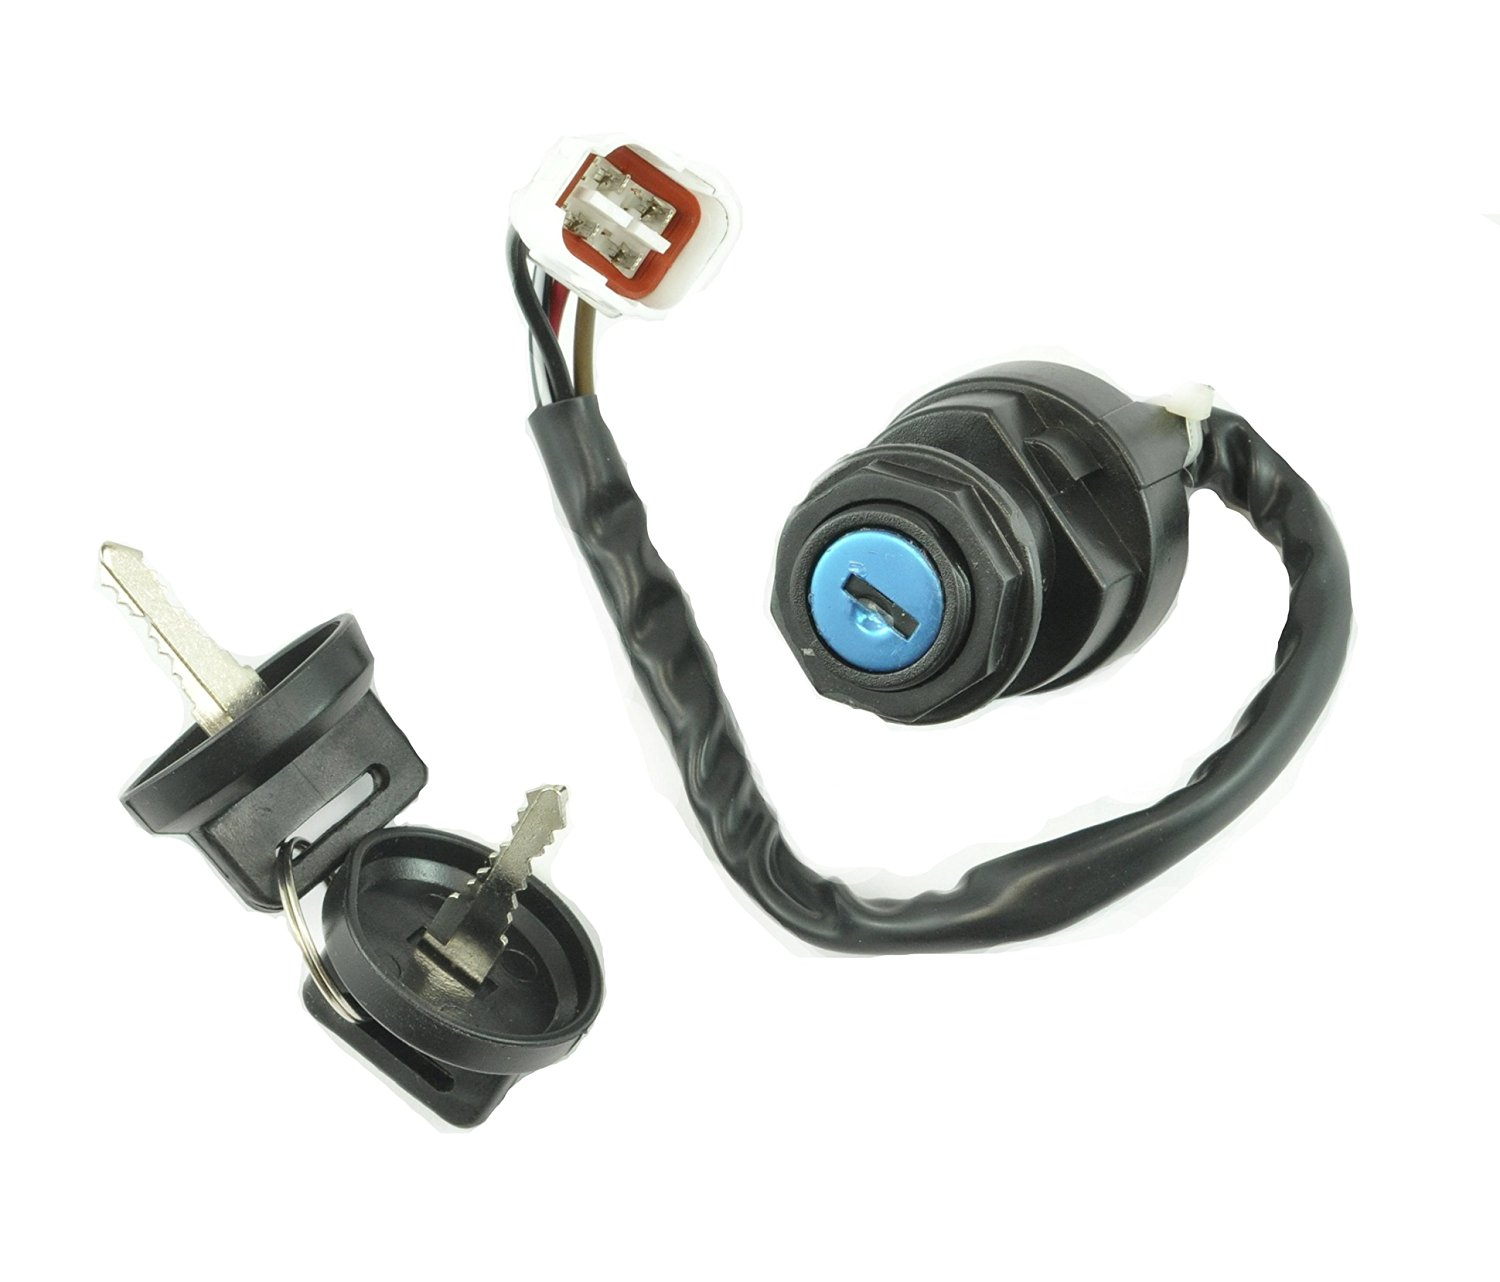 Two Position Ignition Key Switch For Yamaha Big Bear Warrior Wolverine Kodiak Grizzly Banshee 250 350 400 600 1993-2008 OEM Repl.# 4BD-82510-10-00 4GB-82510-00-00 4GB-82510-10-00 3GG-82510-00-00